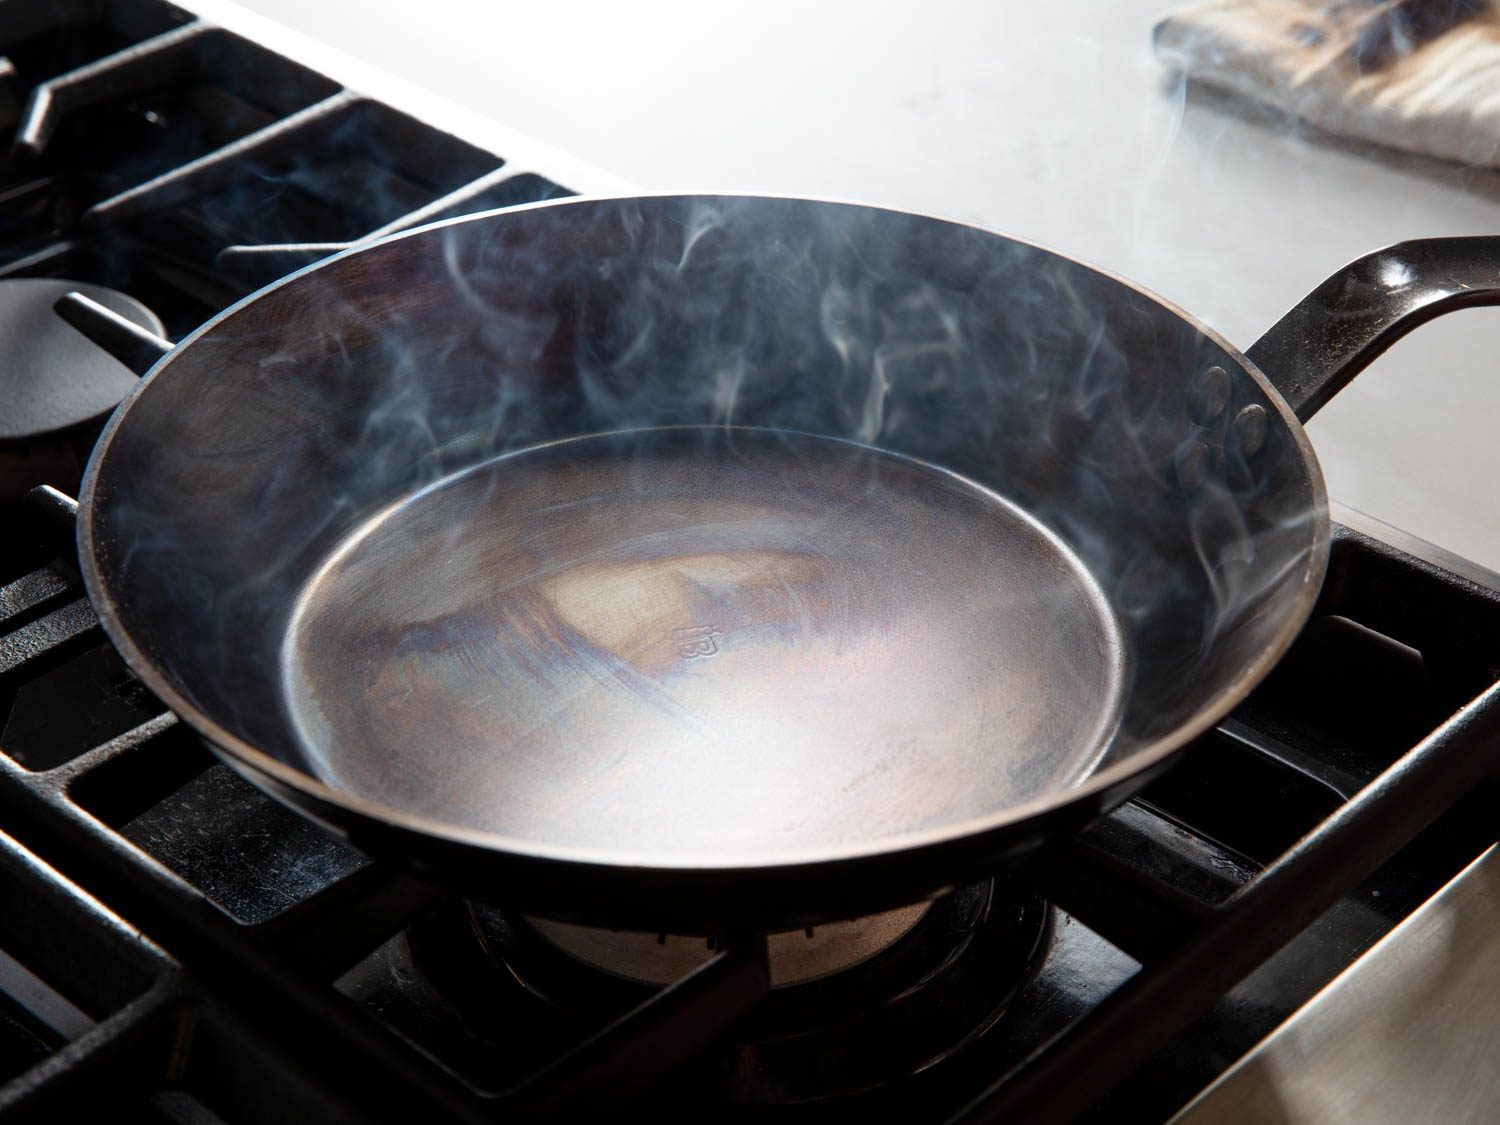 A carbon steel pan in the early stages of seasoning